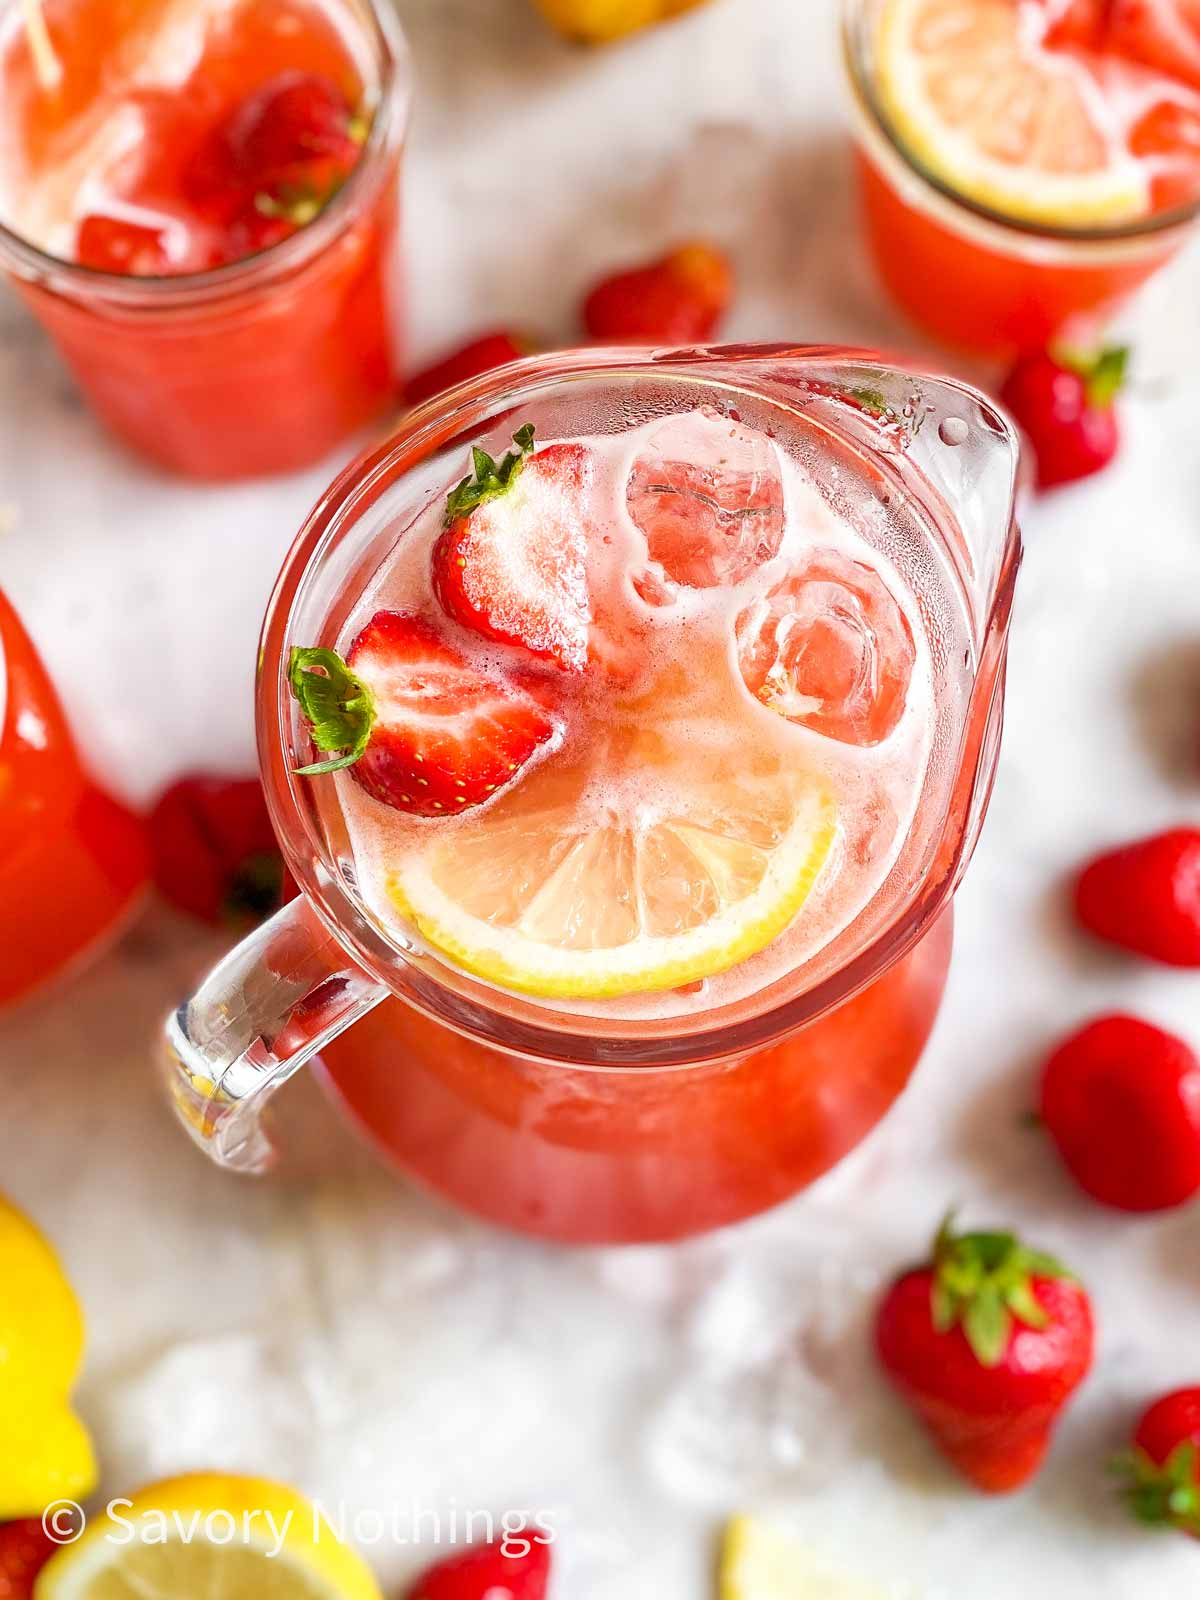 angled overhead view of glass jug filled with strawberry lemonade, lemon slices, ice cubes and sliced strawberries